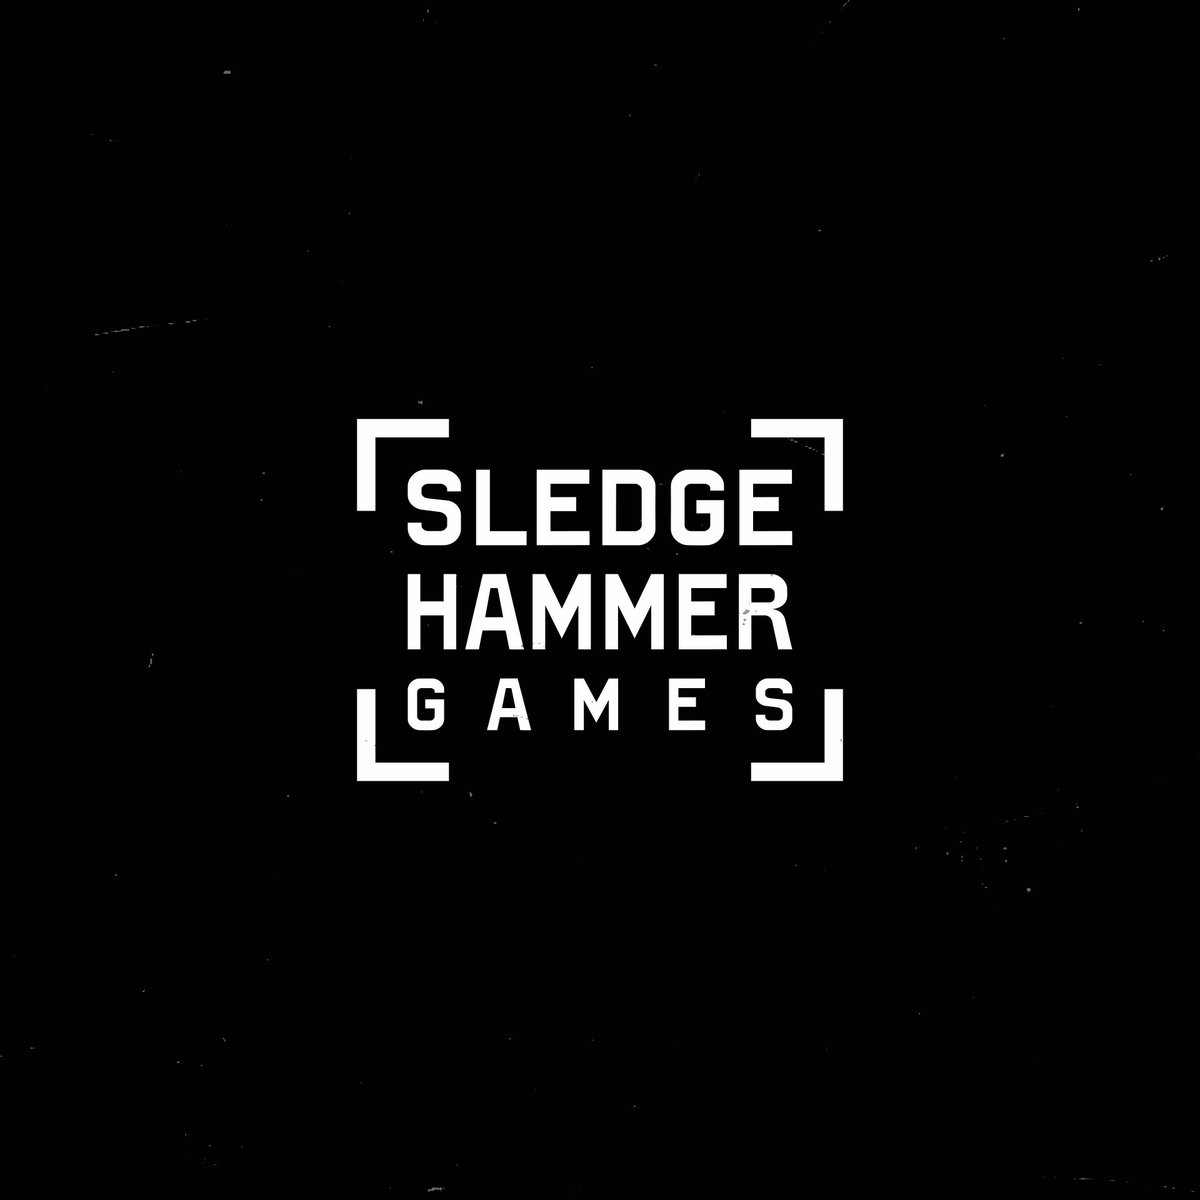 RT @SHGames: Say hi to our new look 👀 https://t.co/1X4I7Ufm8p